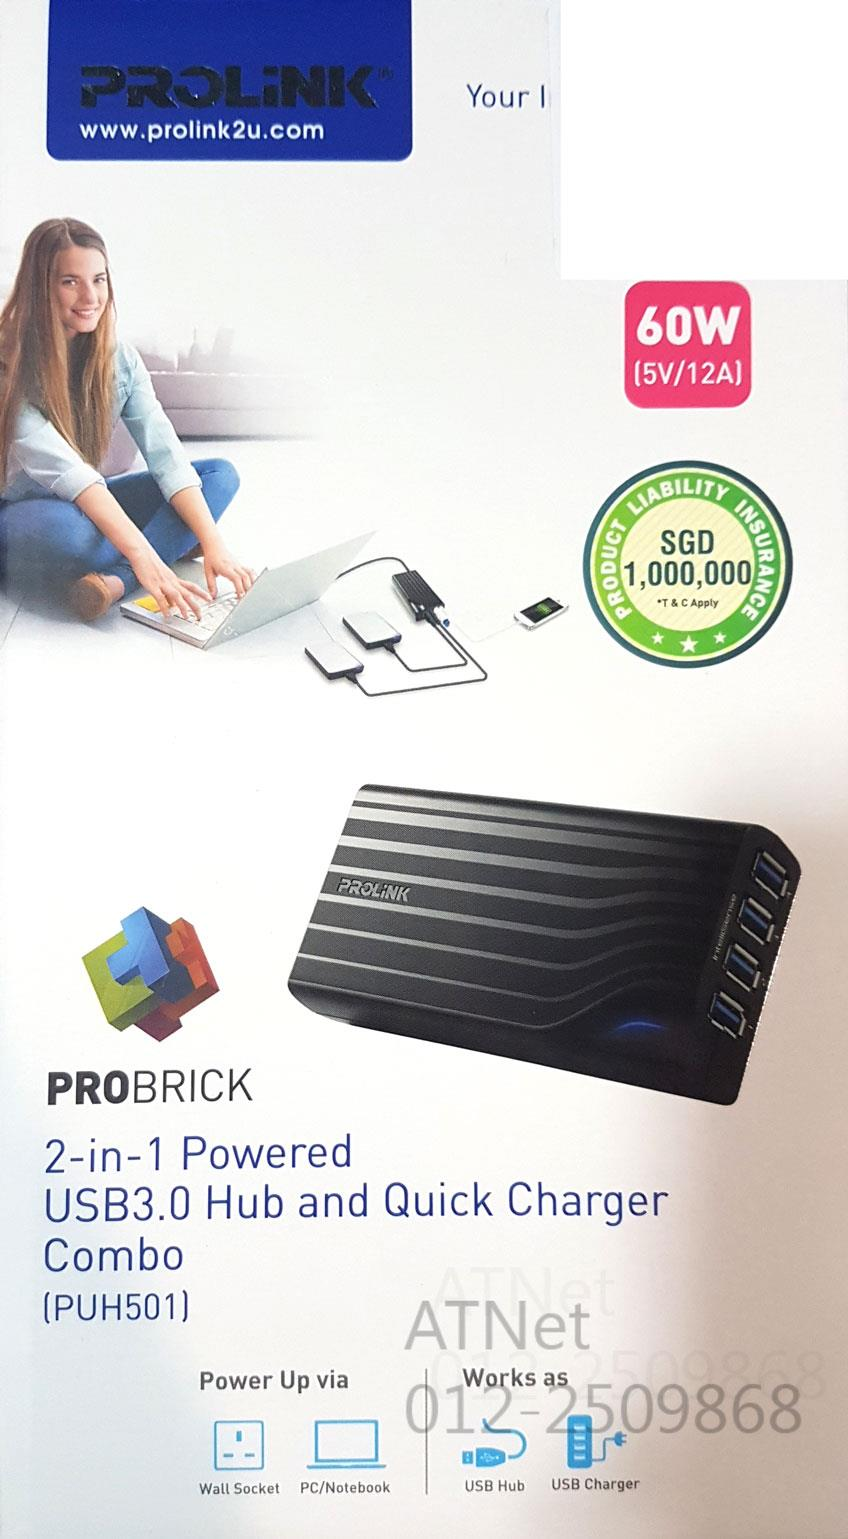 PROLINK PROBRICK 4-in-1 USB3.0 Hub/ Quick Charger (PUH501)